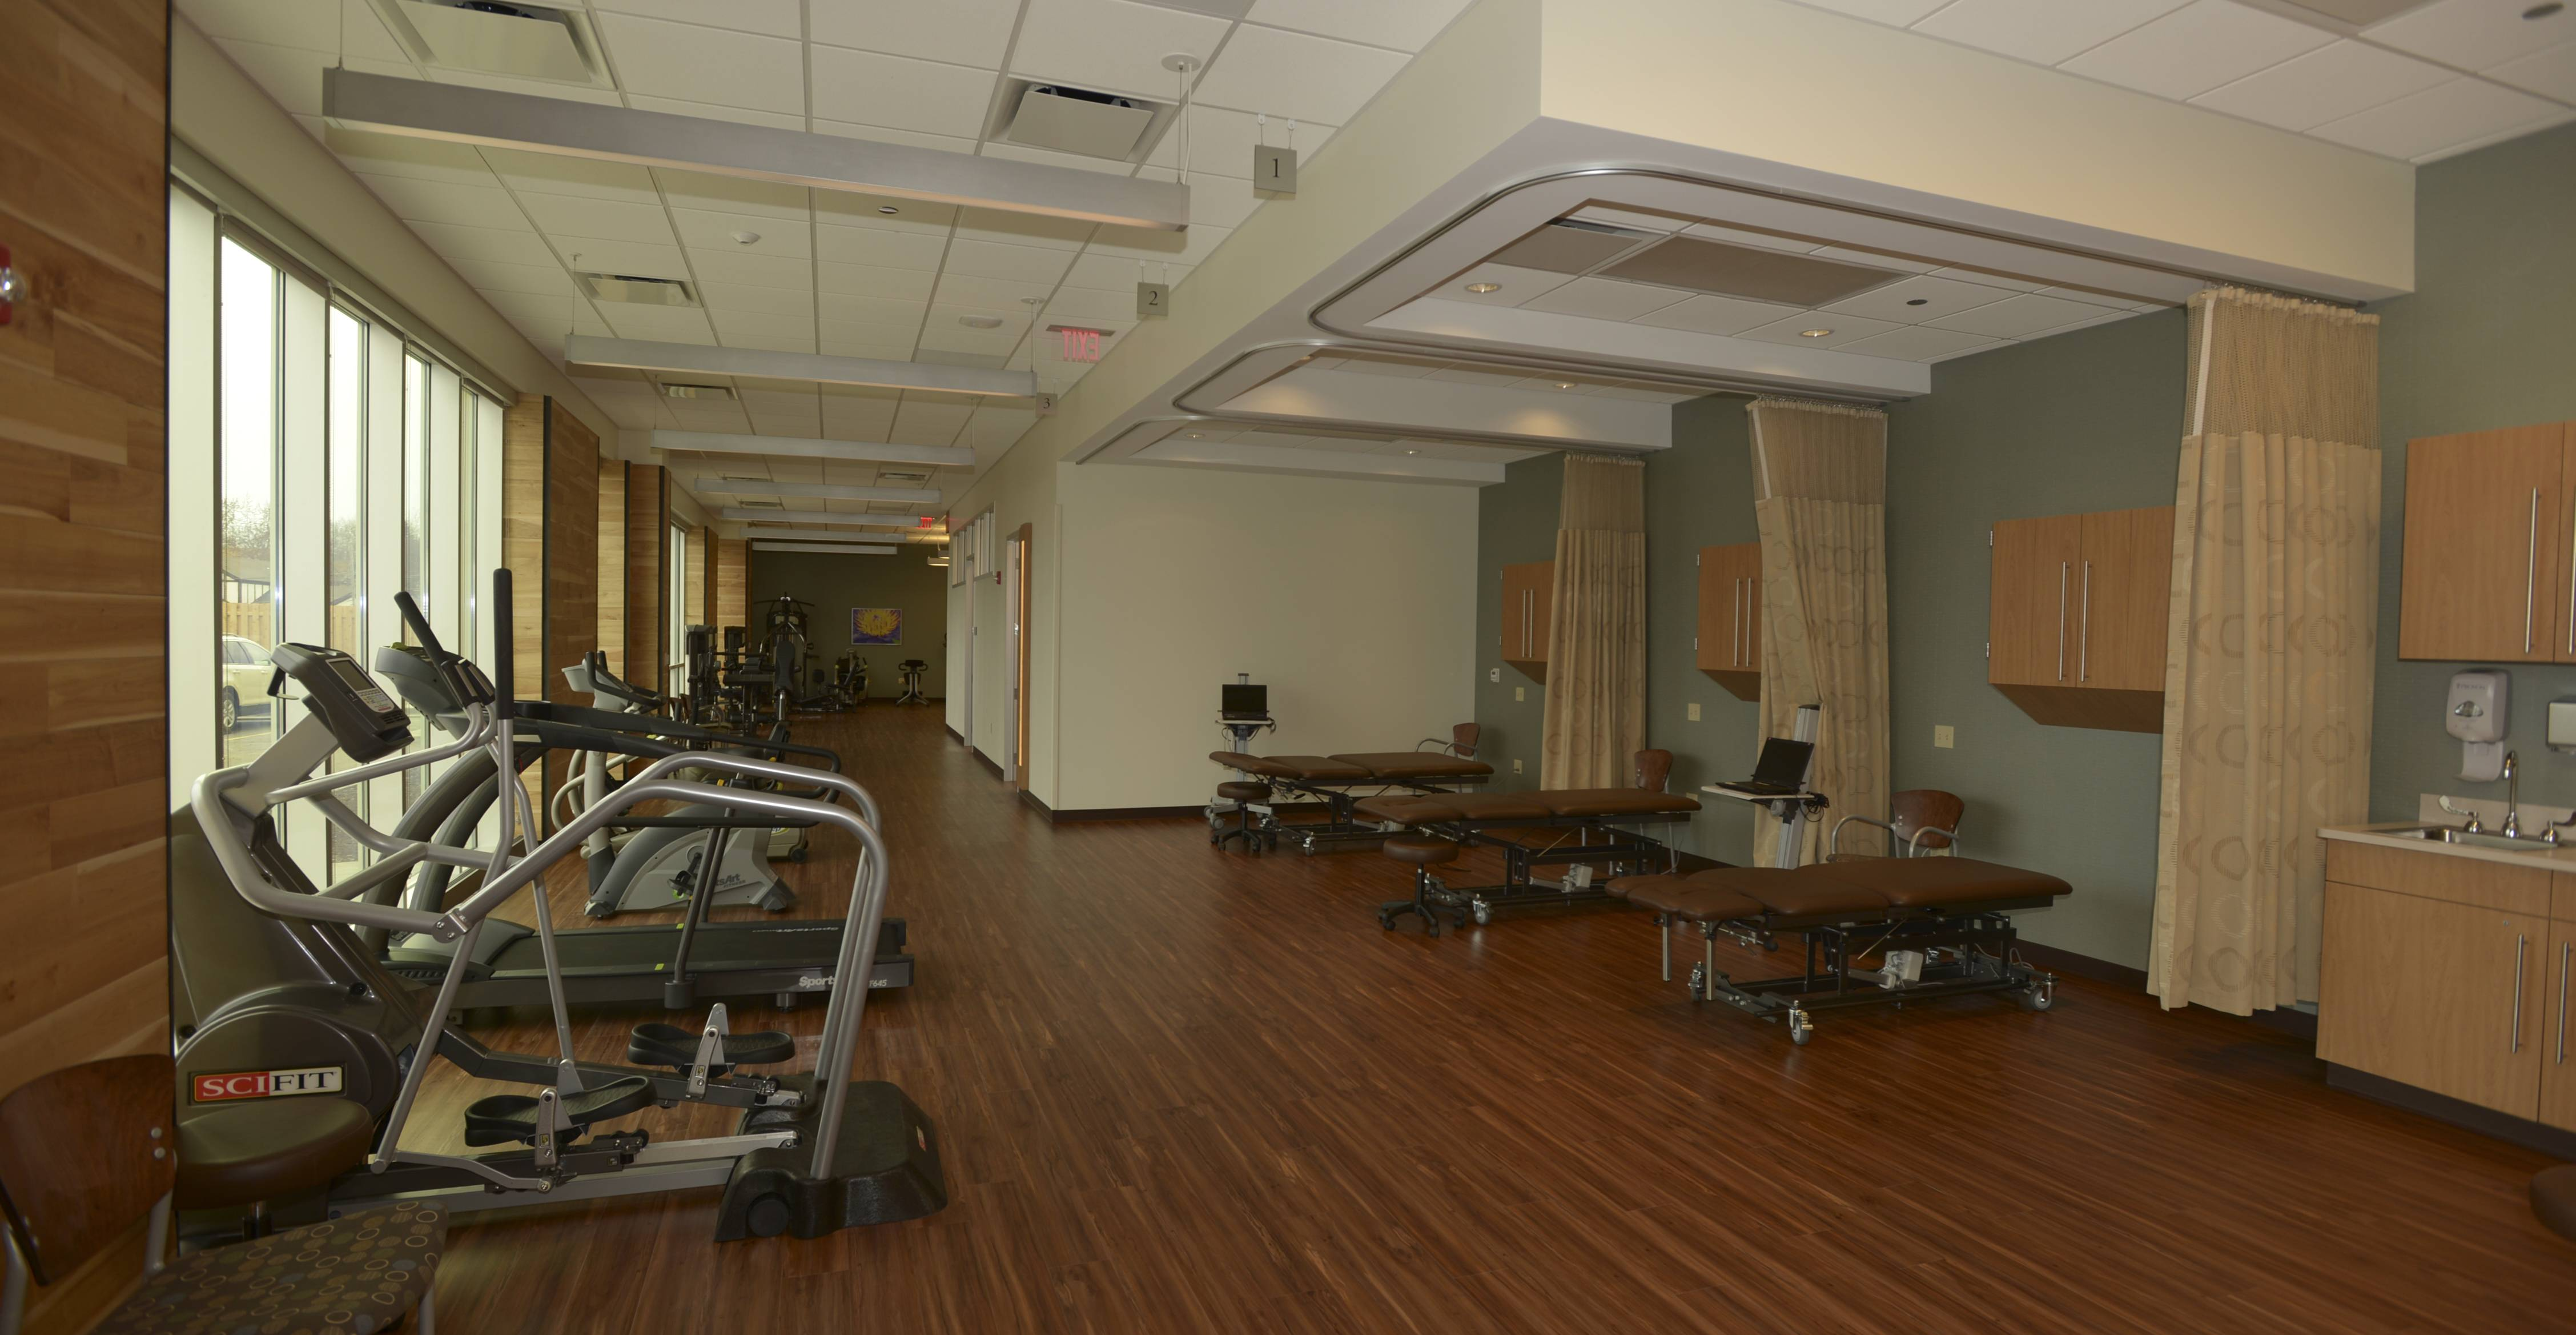 A physical and occupational therapy suite is among the amenities at the new DuPage Medical Group Building in downtown Wheaton.